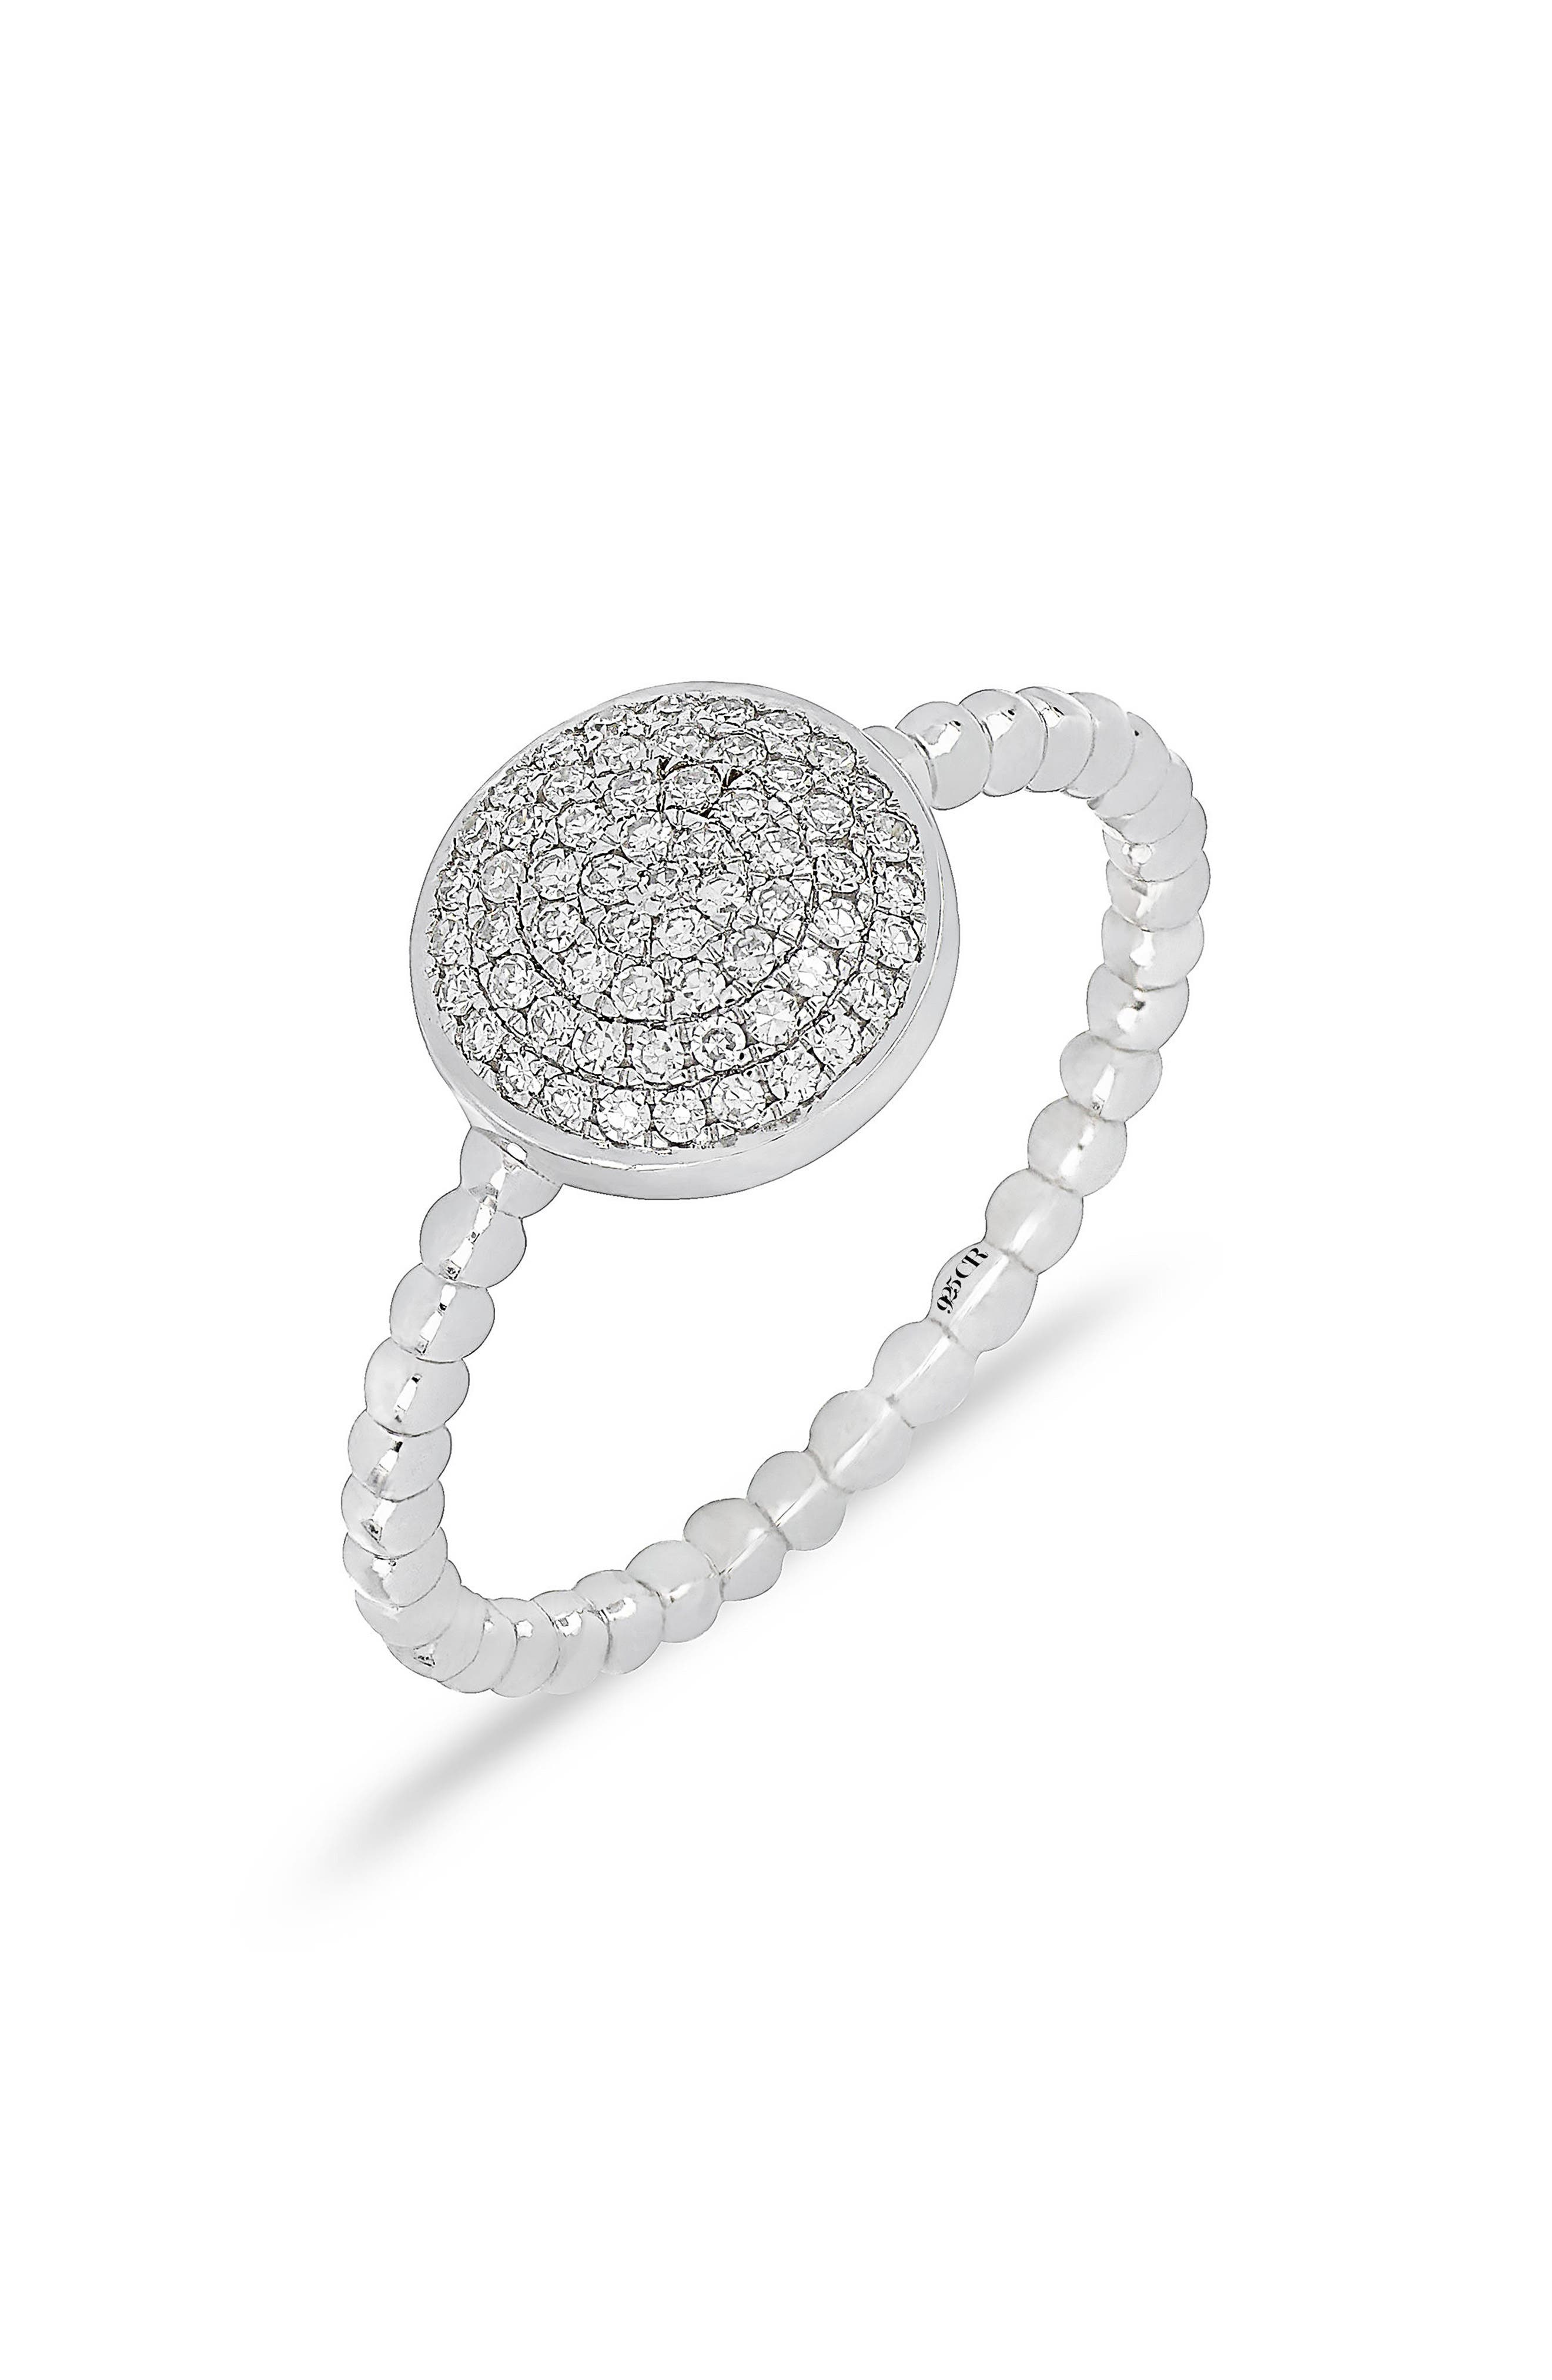 Alternate Image 1 Selected - Carrière Pavé Diamond Disc Ring (Nordstrom Exclusive)